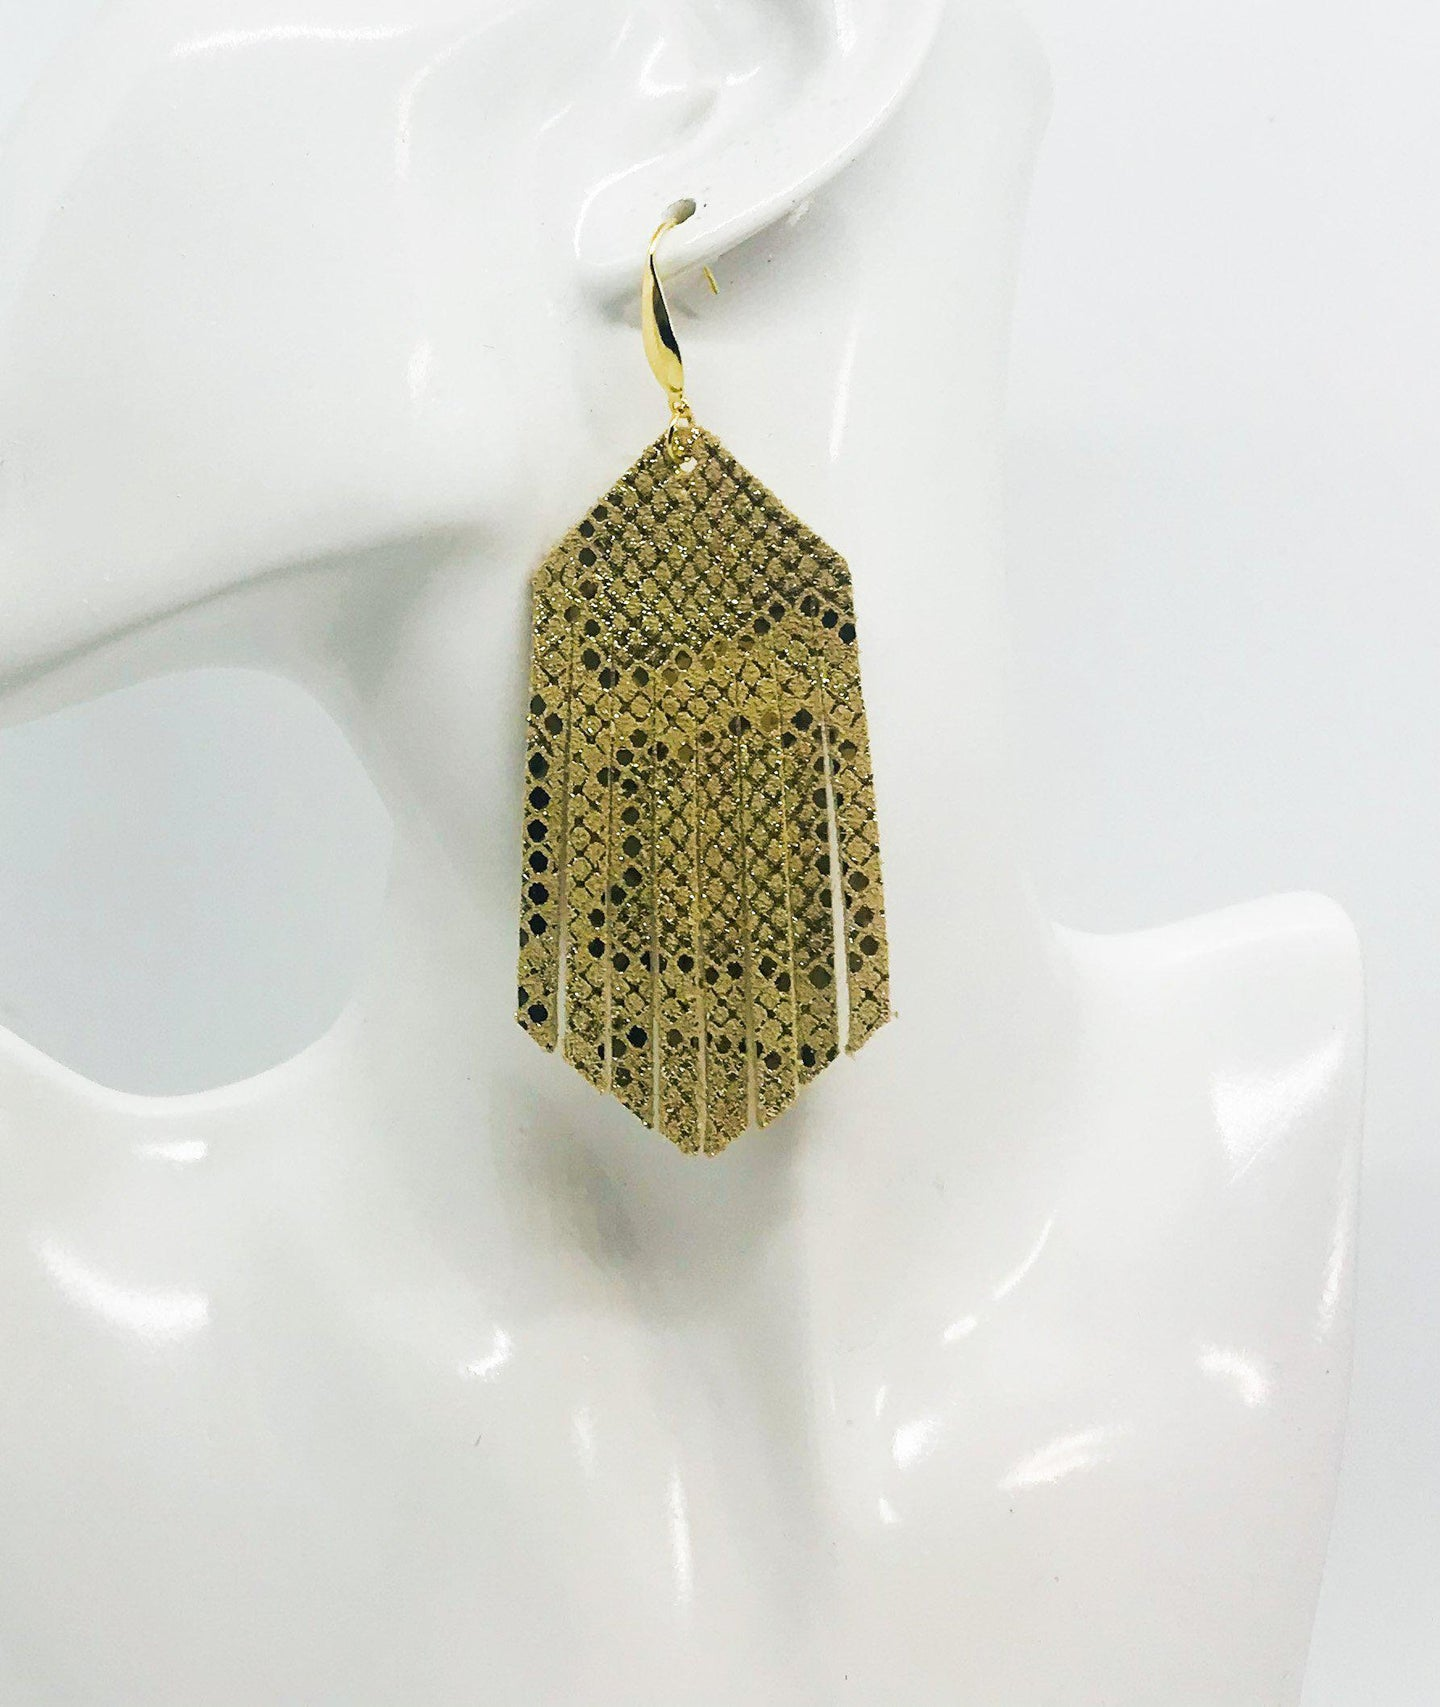 Mystic Gold on Tan Leather Earrings - E19-1437